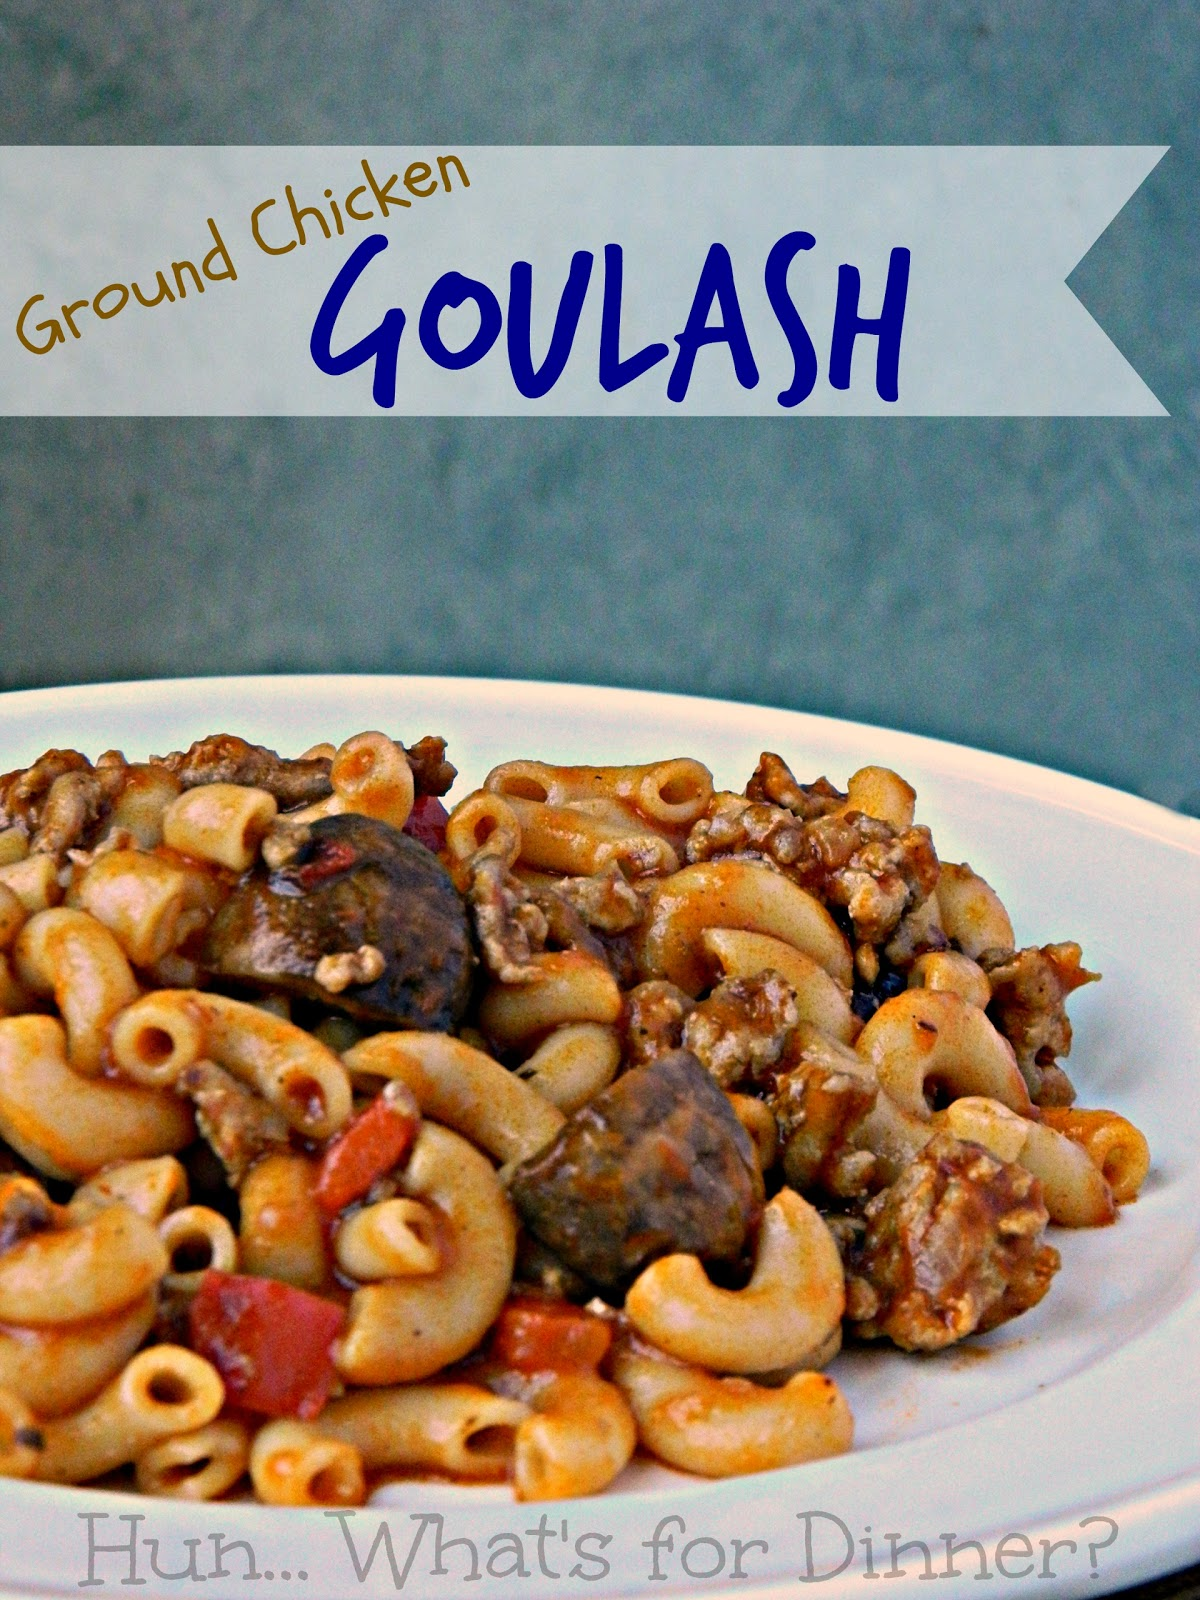 Hun... What's for Dinner? | Ground Chicken Goulash